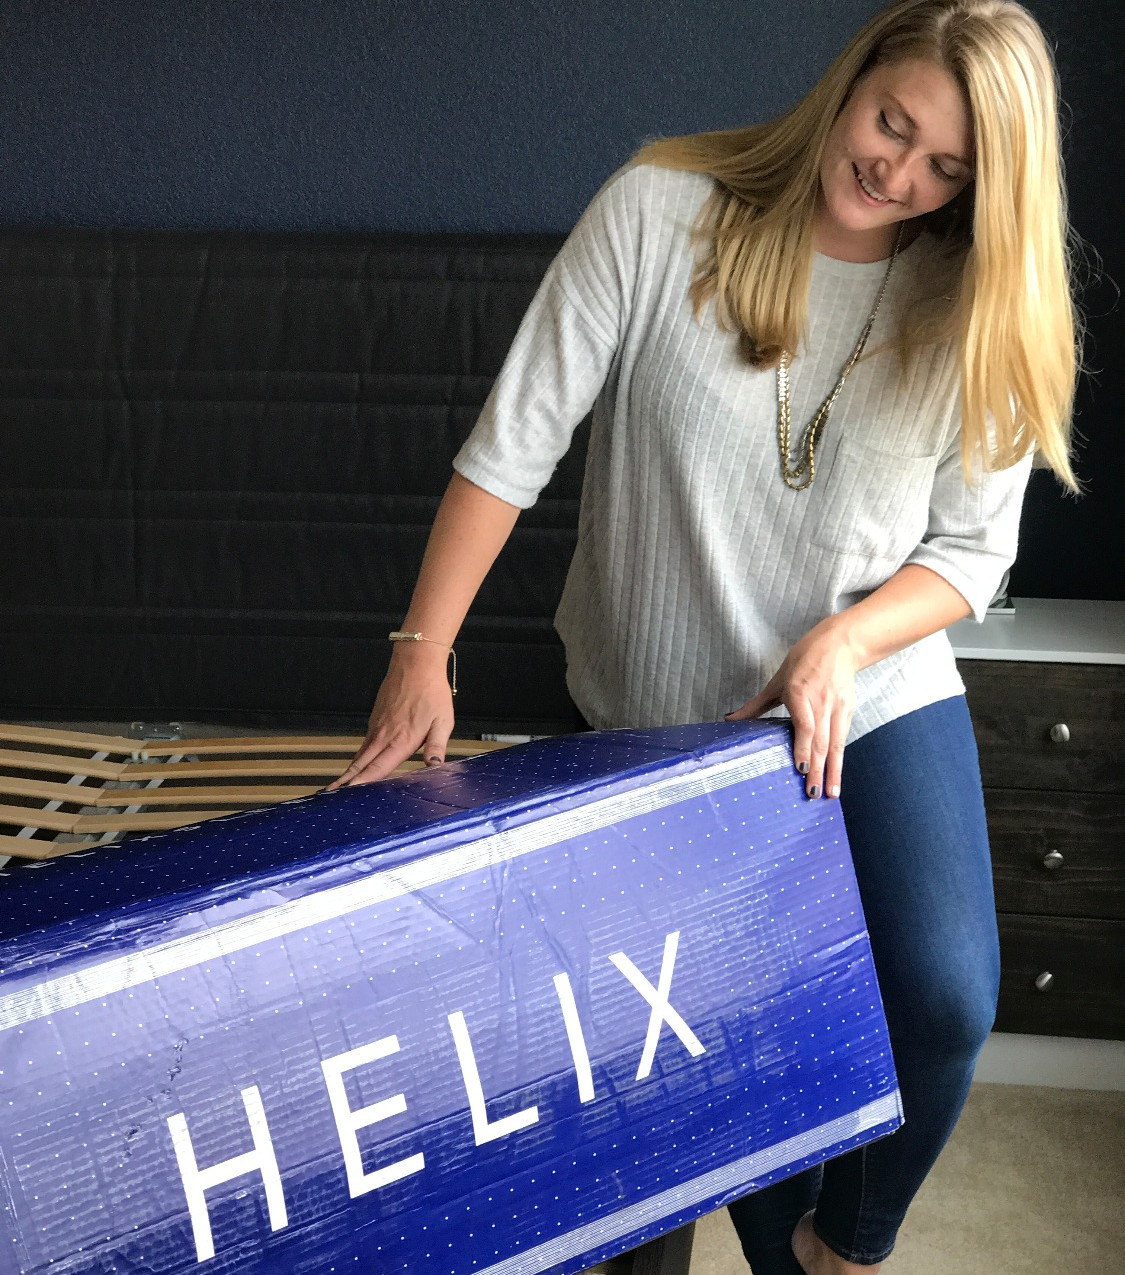 Bites with Bre Unboxing Helix Mattress